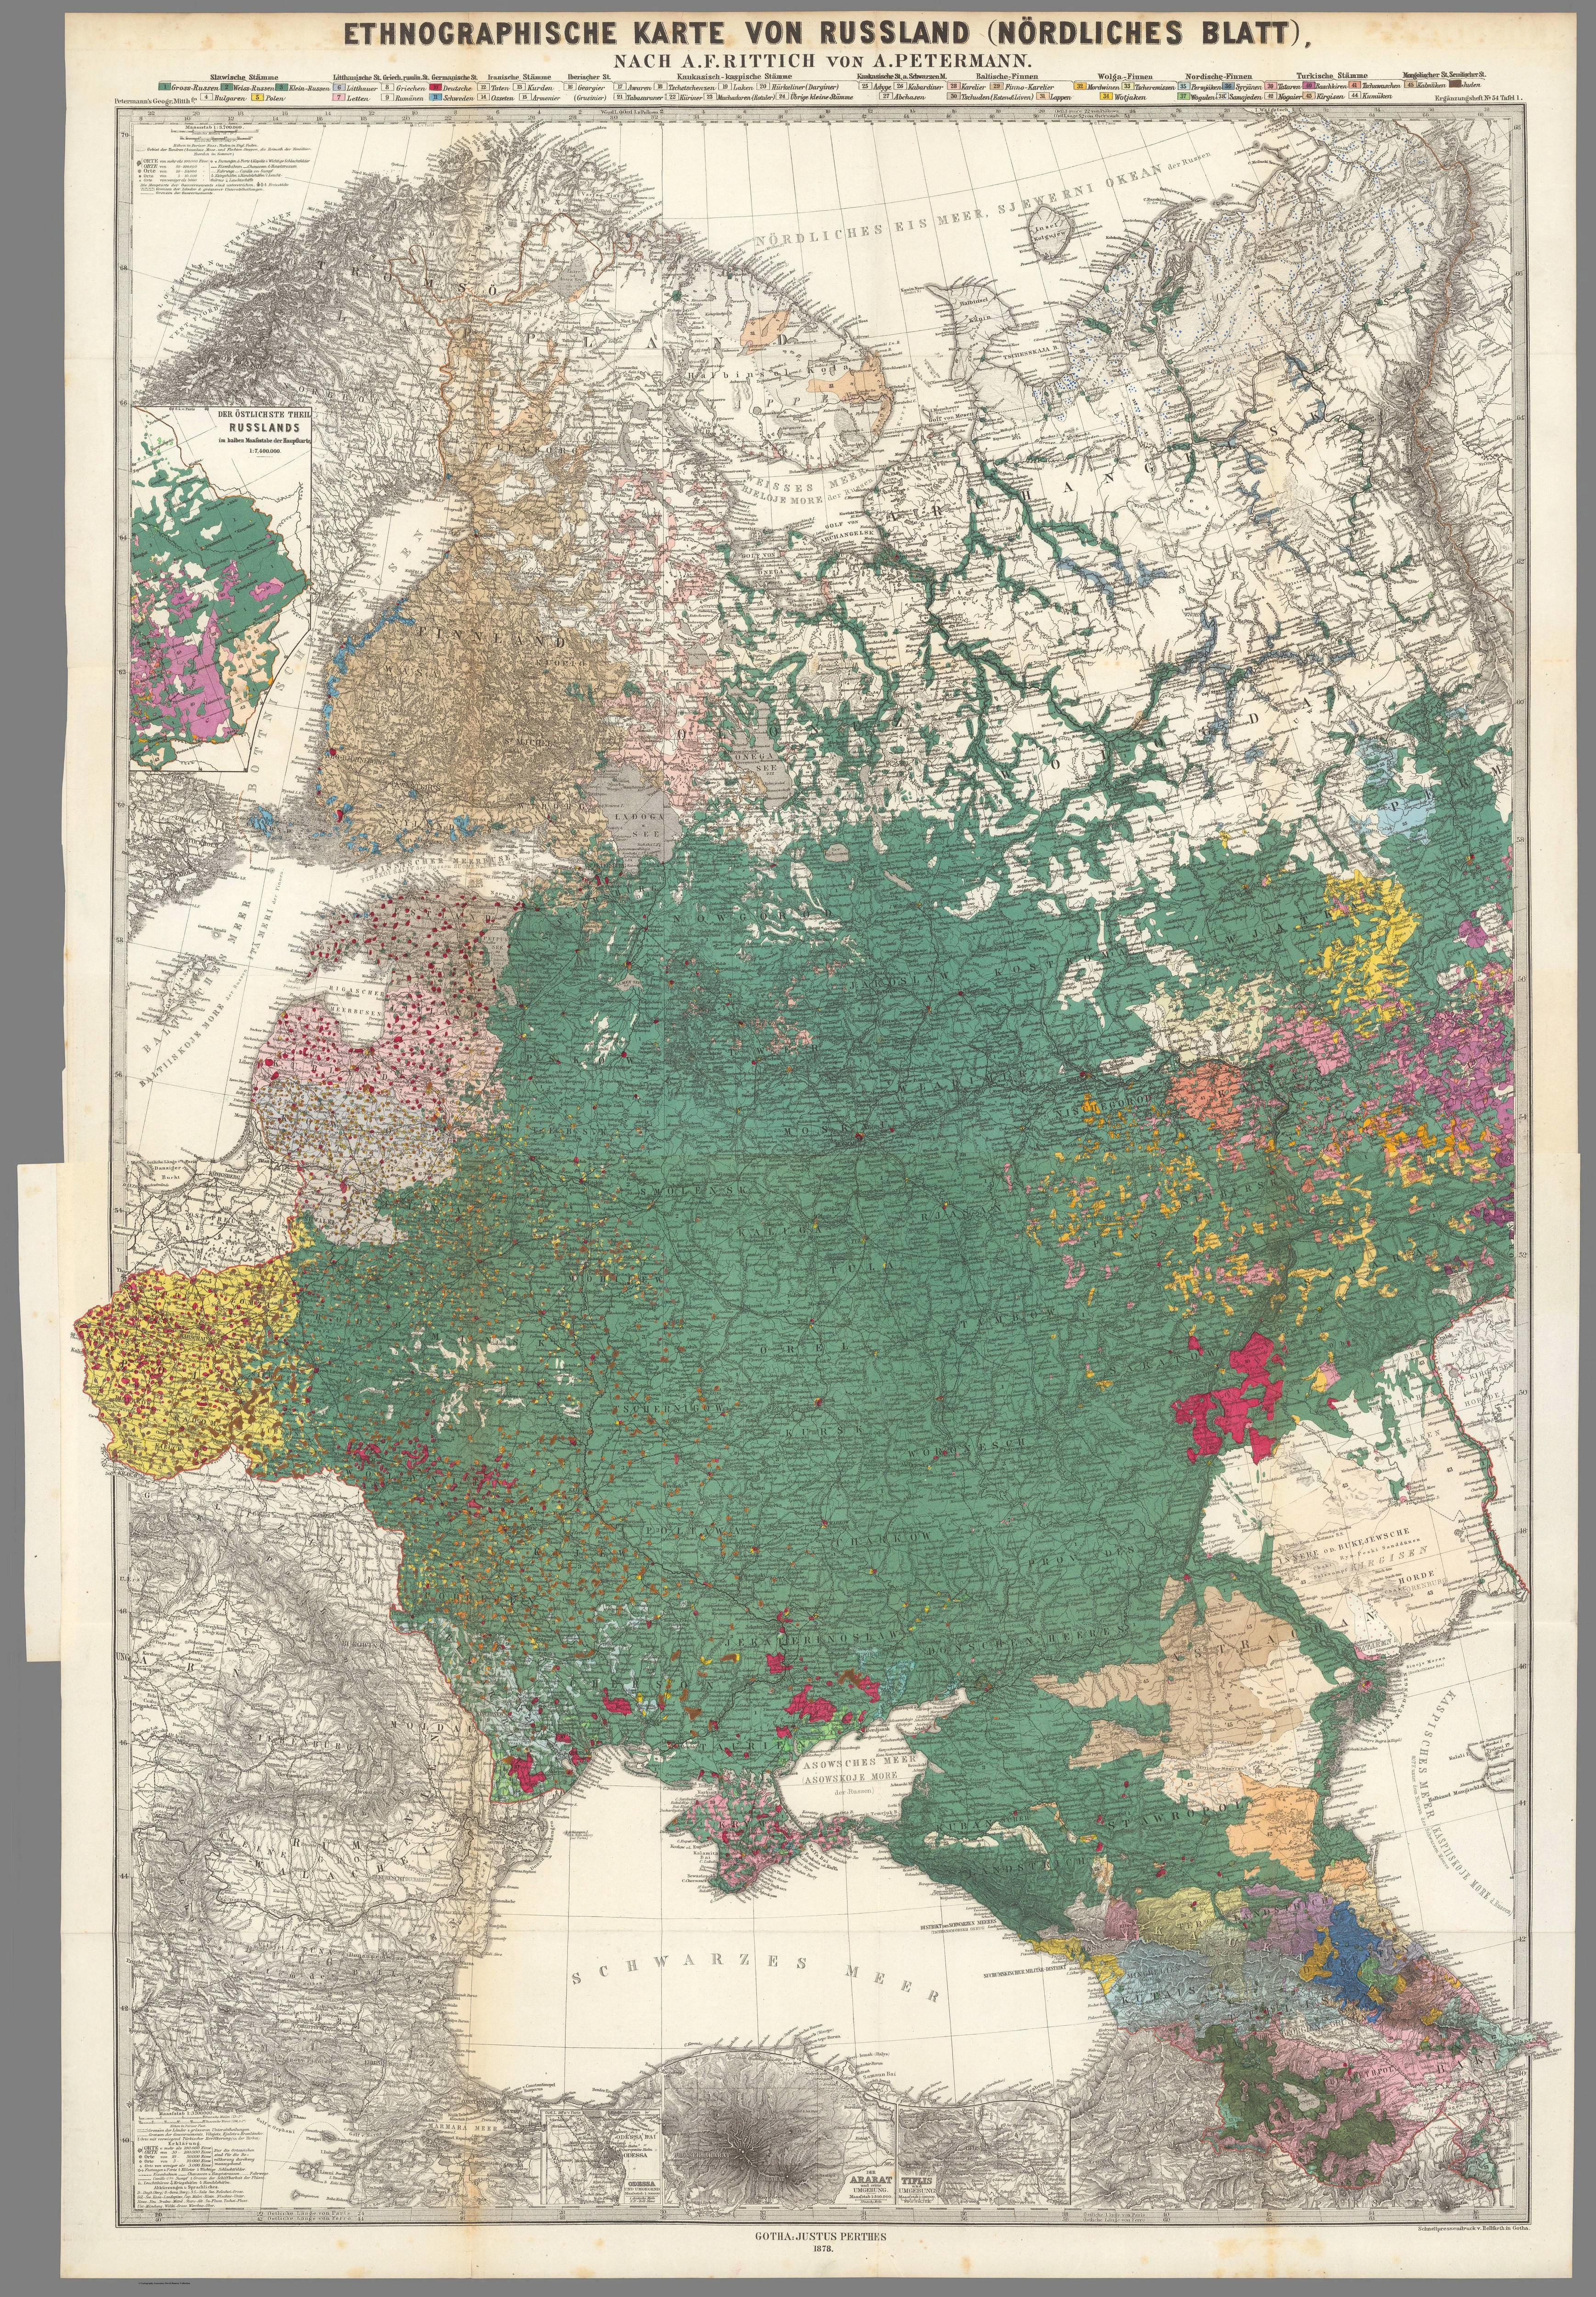 1878 Ethnographic map of Russia in Europe Sublime Maps